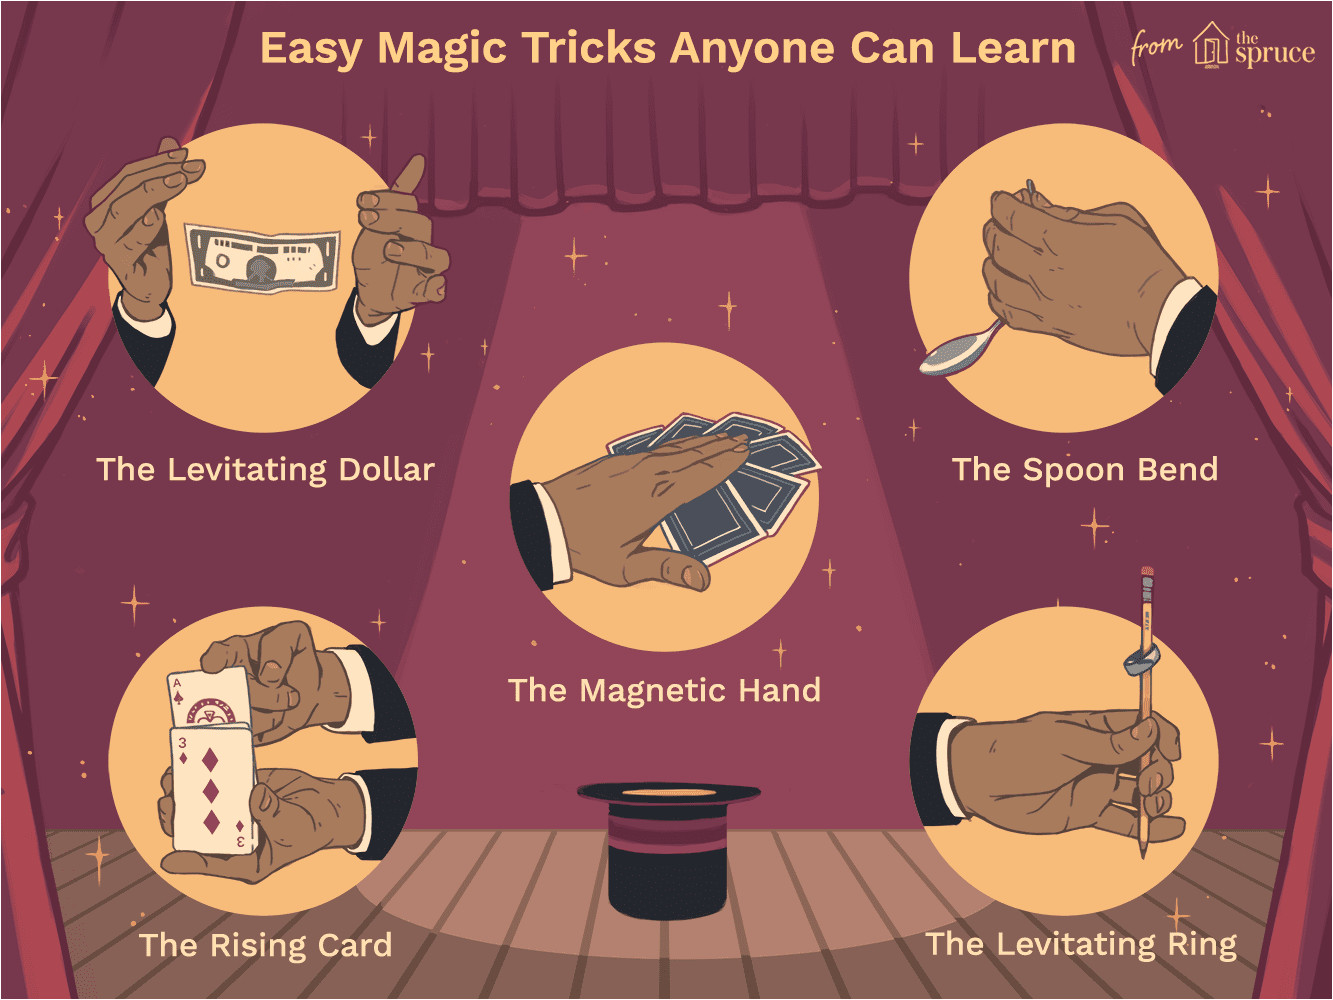 Easy Simple Card Magic Tricks Learn Fun Magic Tricks to Try On Your Friends